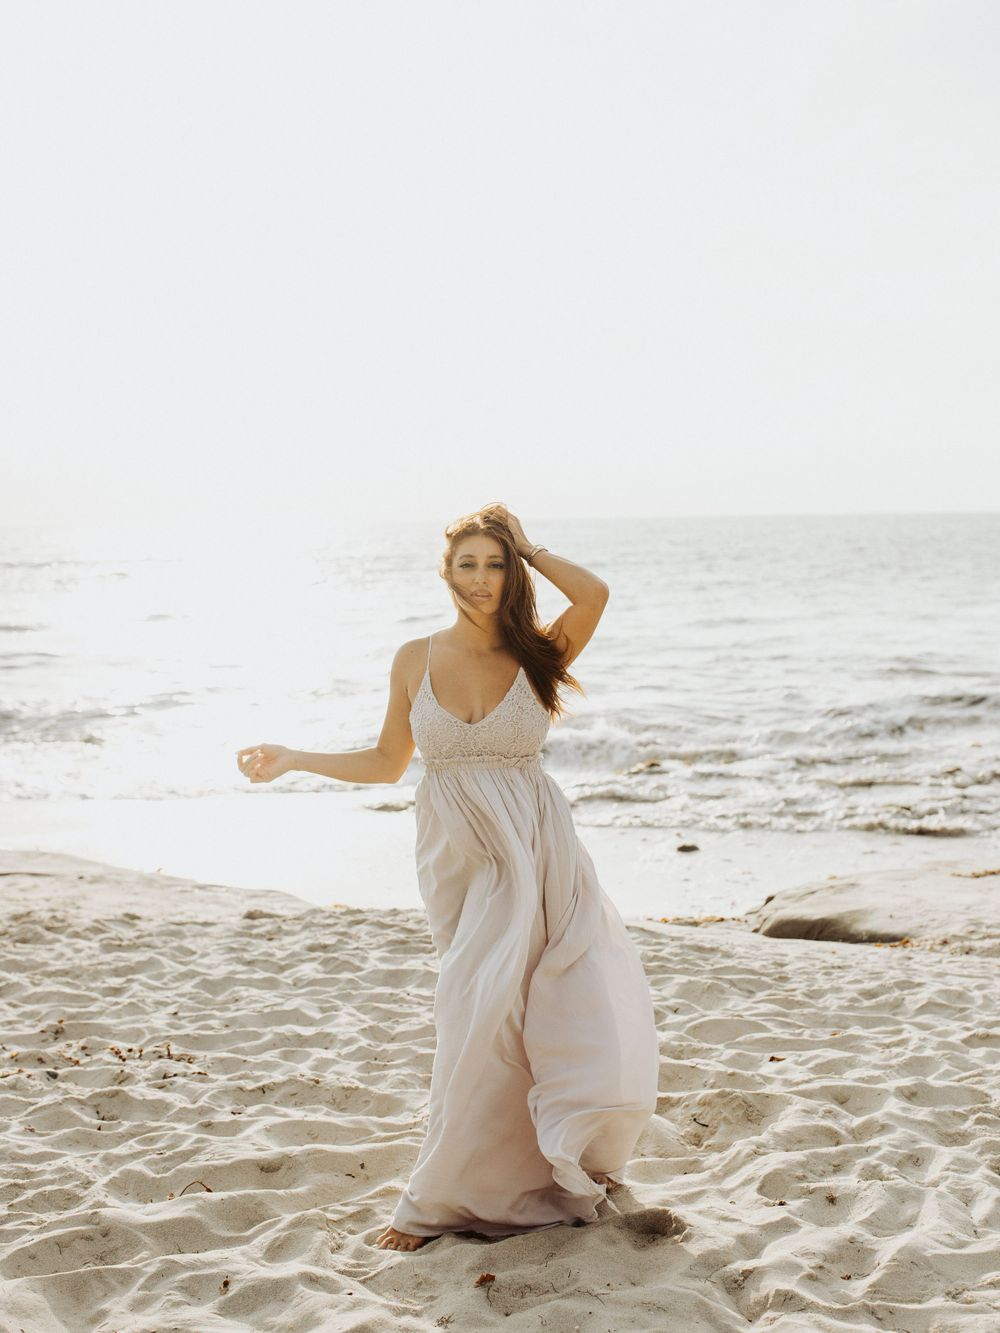 sunset cliffs san diego couple photoshoot engagement shoot posing ideas outfit inspiratio san diego wedding photographer